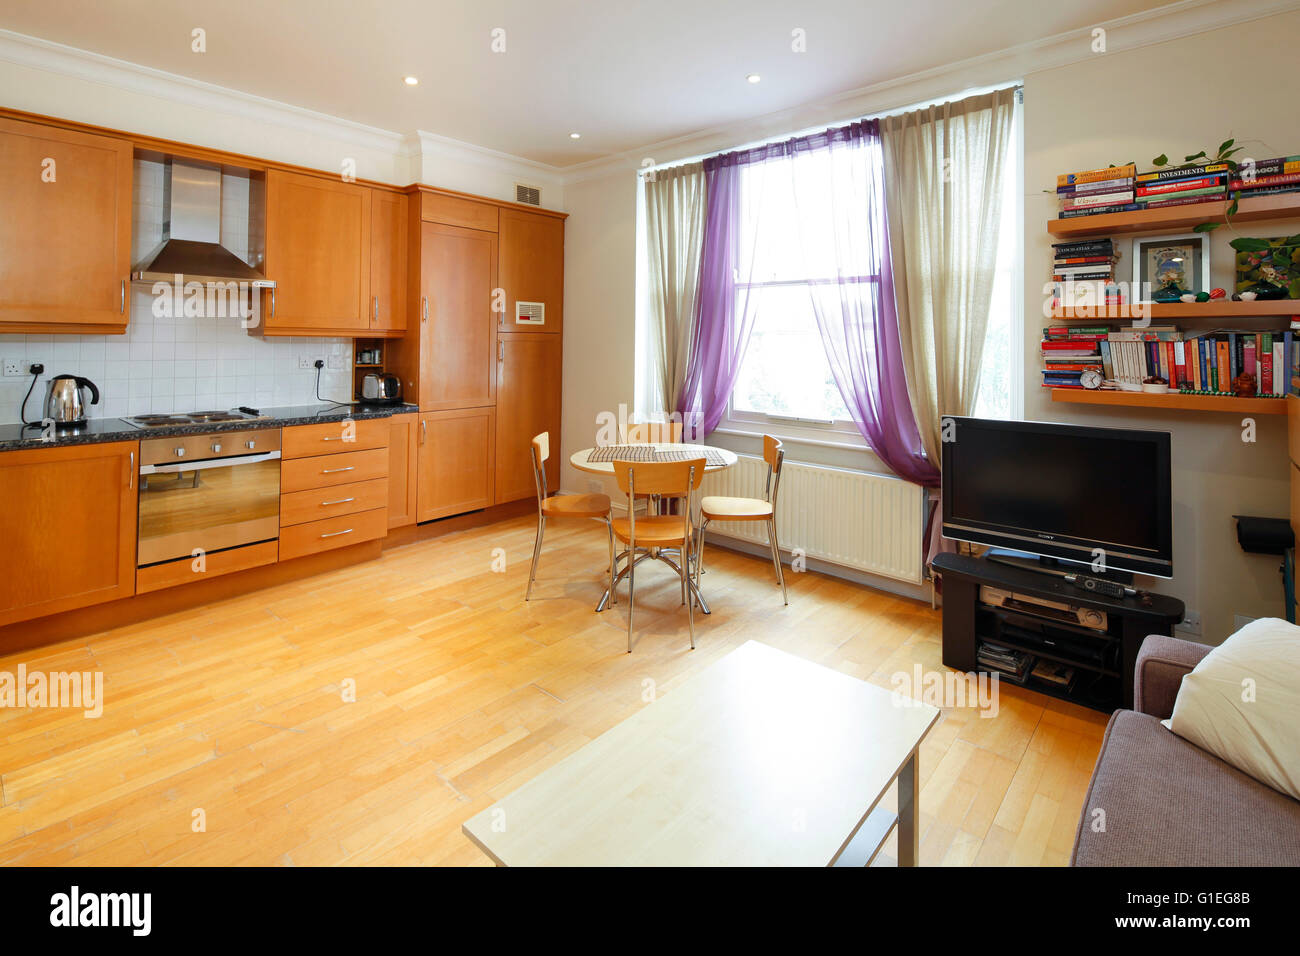 Belsize Lane, Hampstead. Open plan living room and kitchen with wood floors and large window. Stock Photo